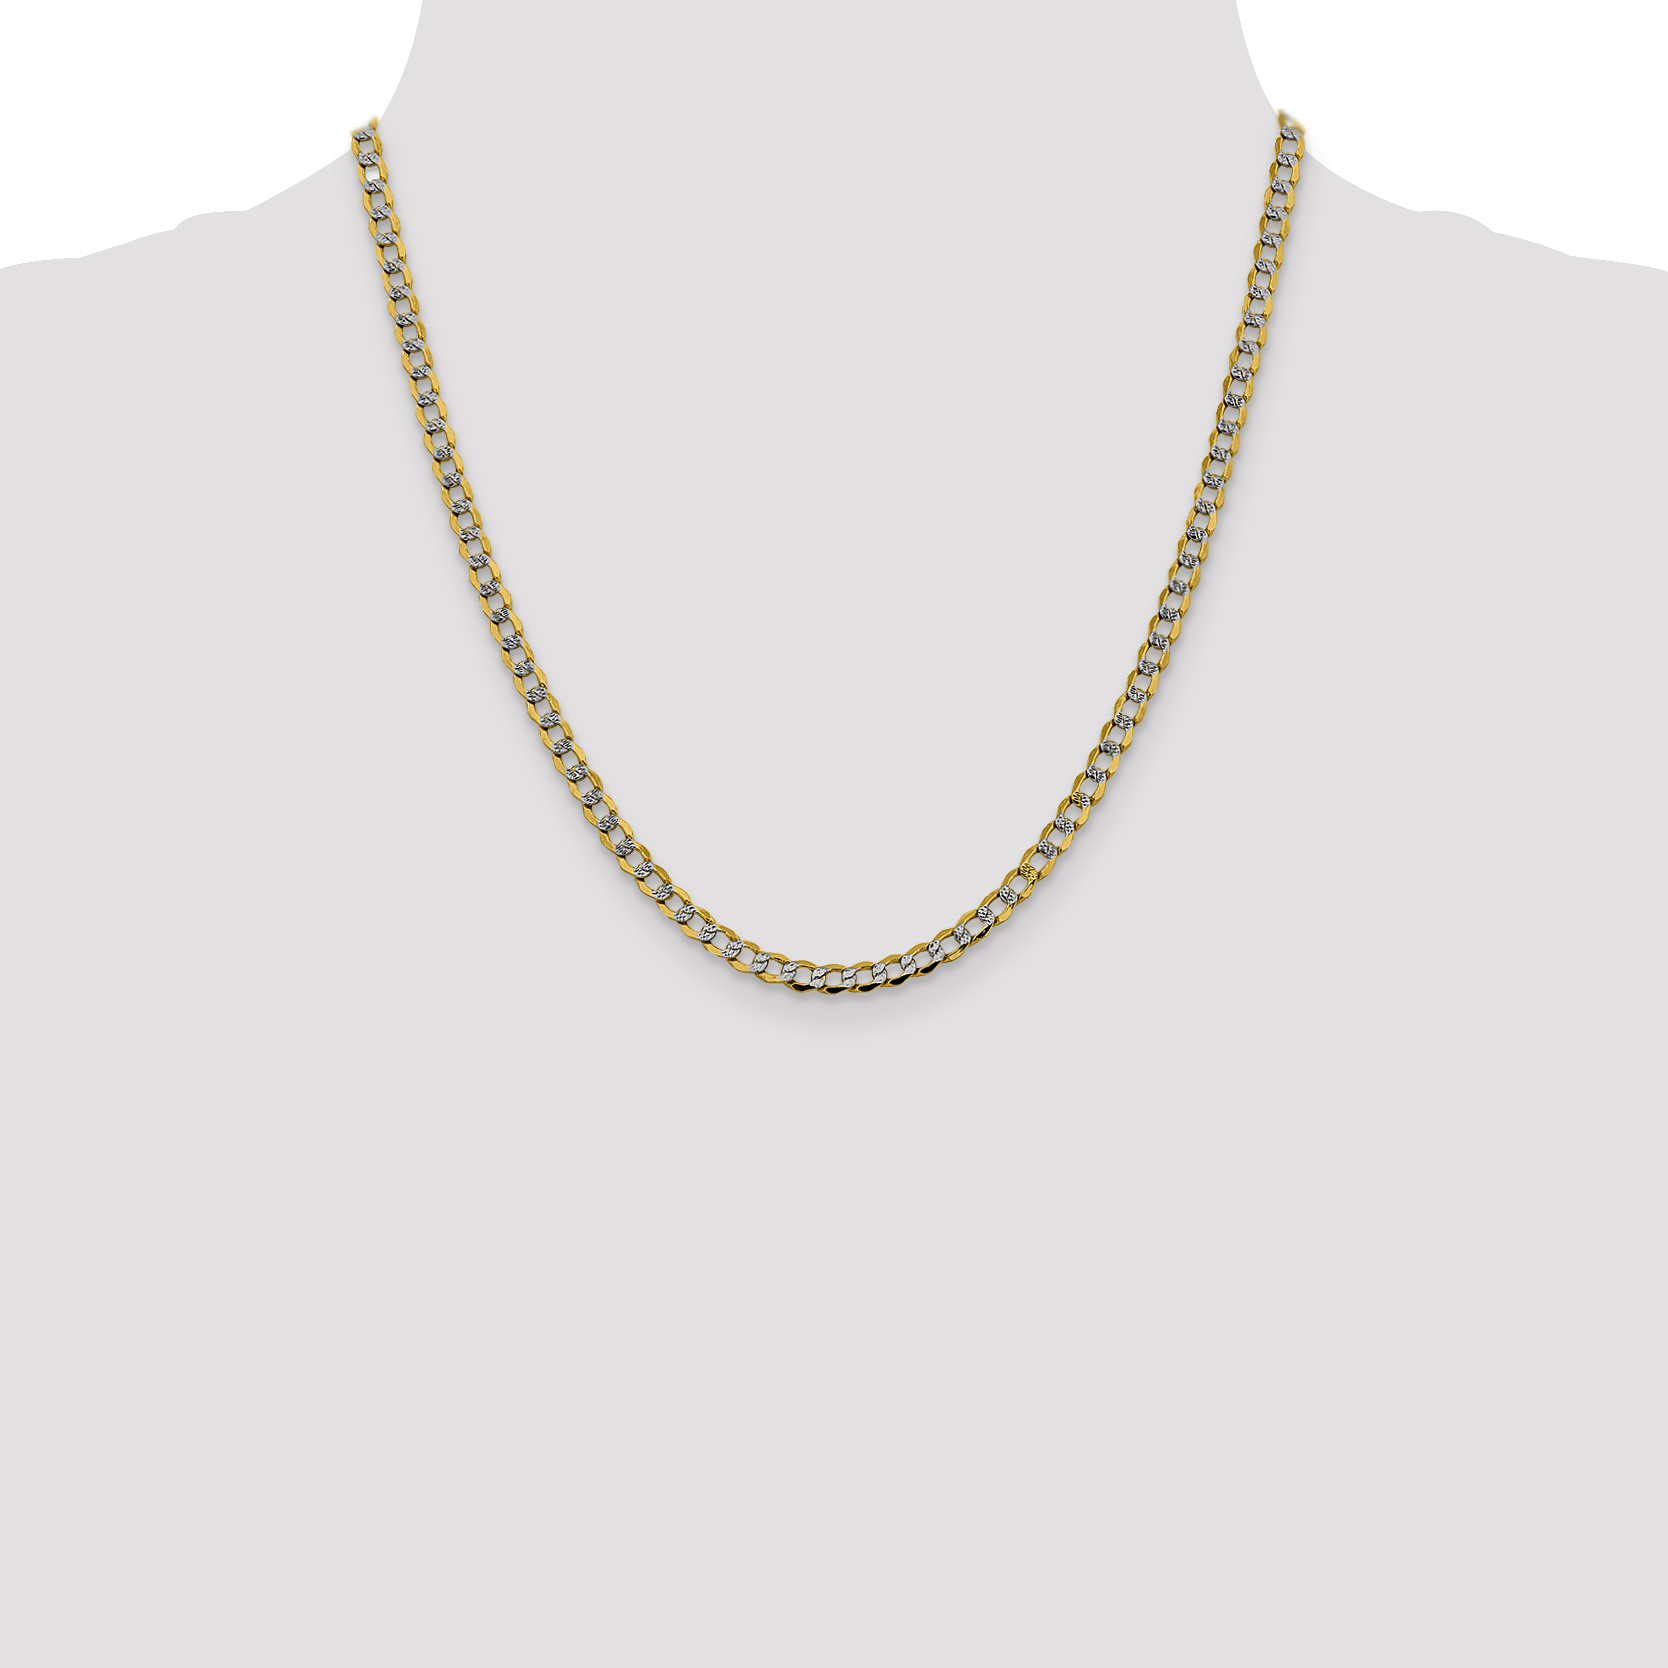 14k Yellow Gold 4.3mm Link Curb Chain Necklace 20 Inch Pendant Charm Pav? Fine Jewelry Gifts For Women For Her - image 4 of 5